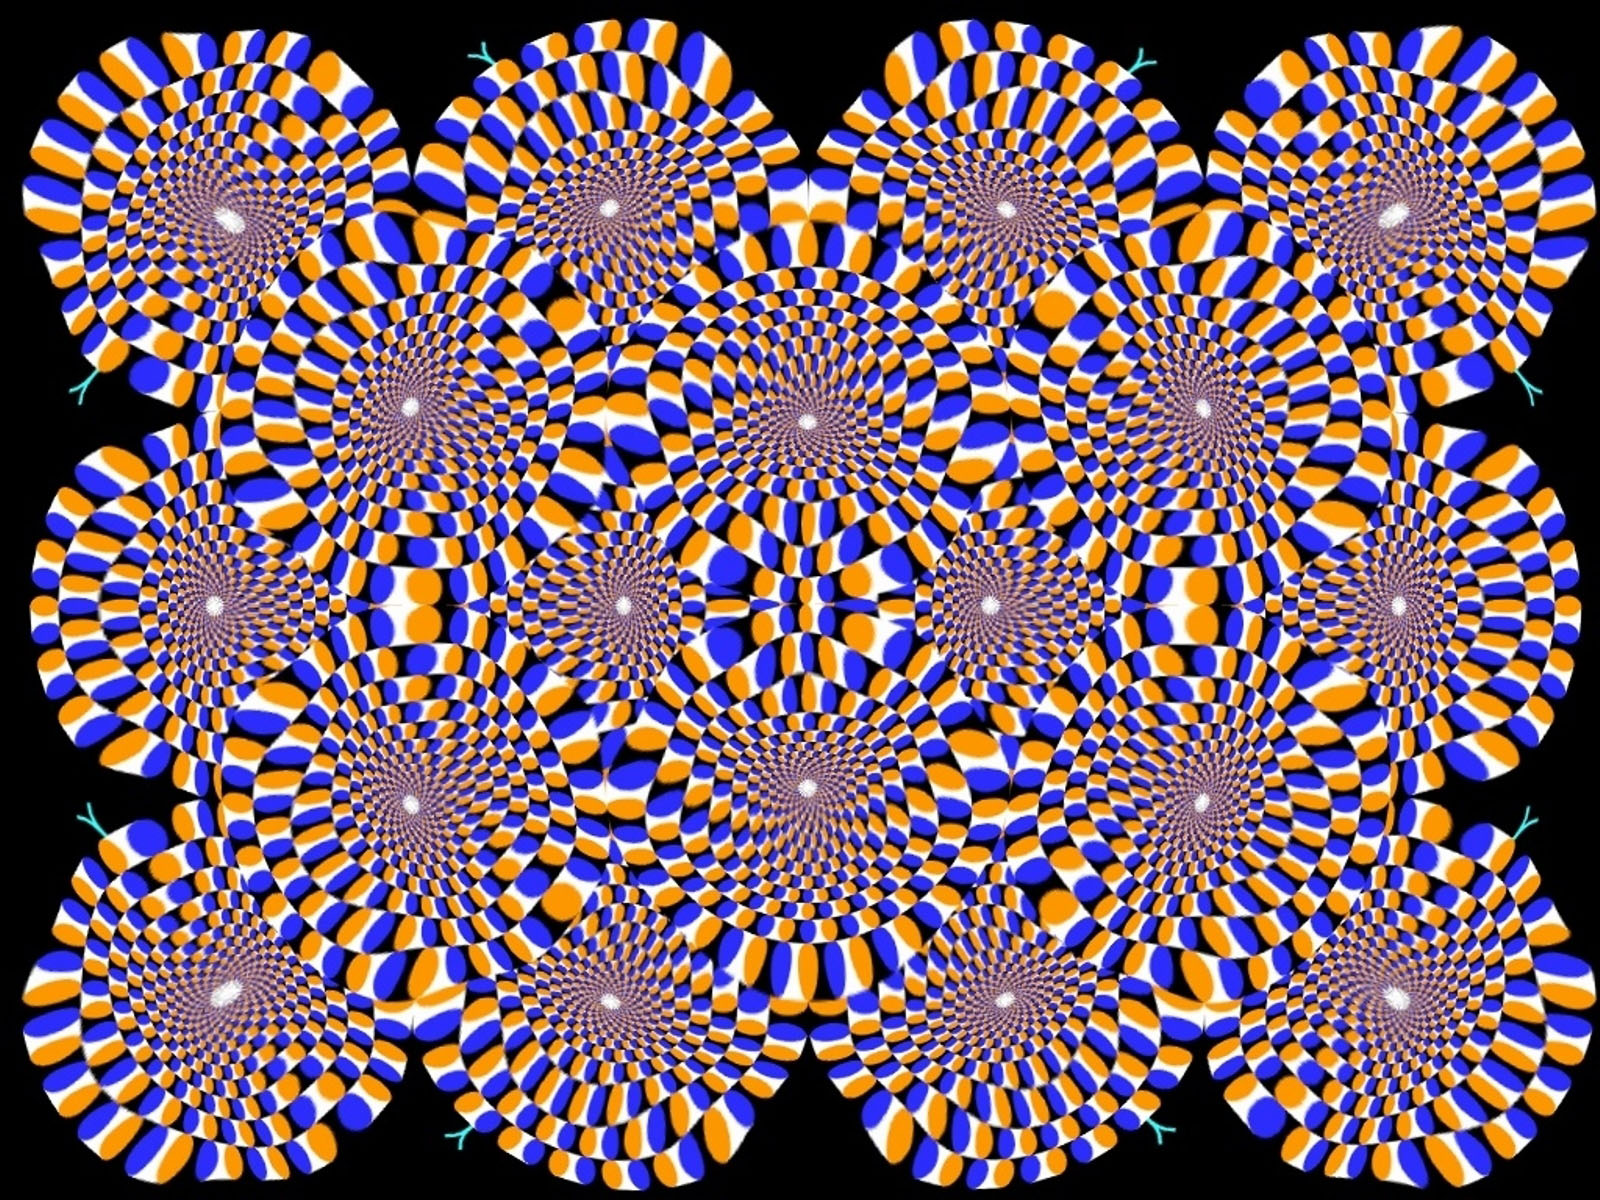 optical art desktop - photo #19